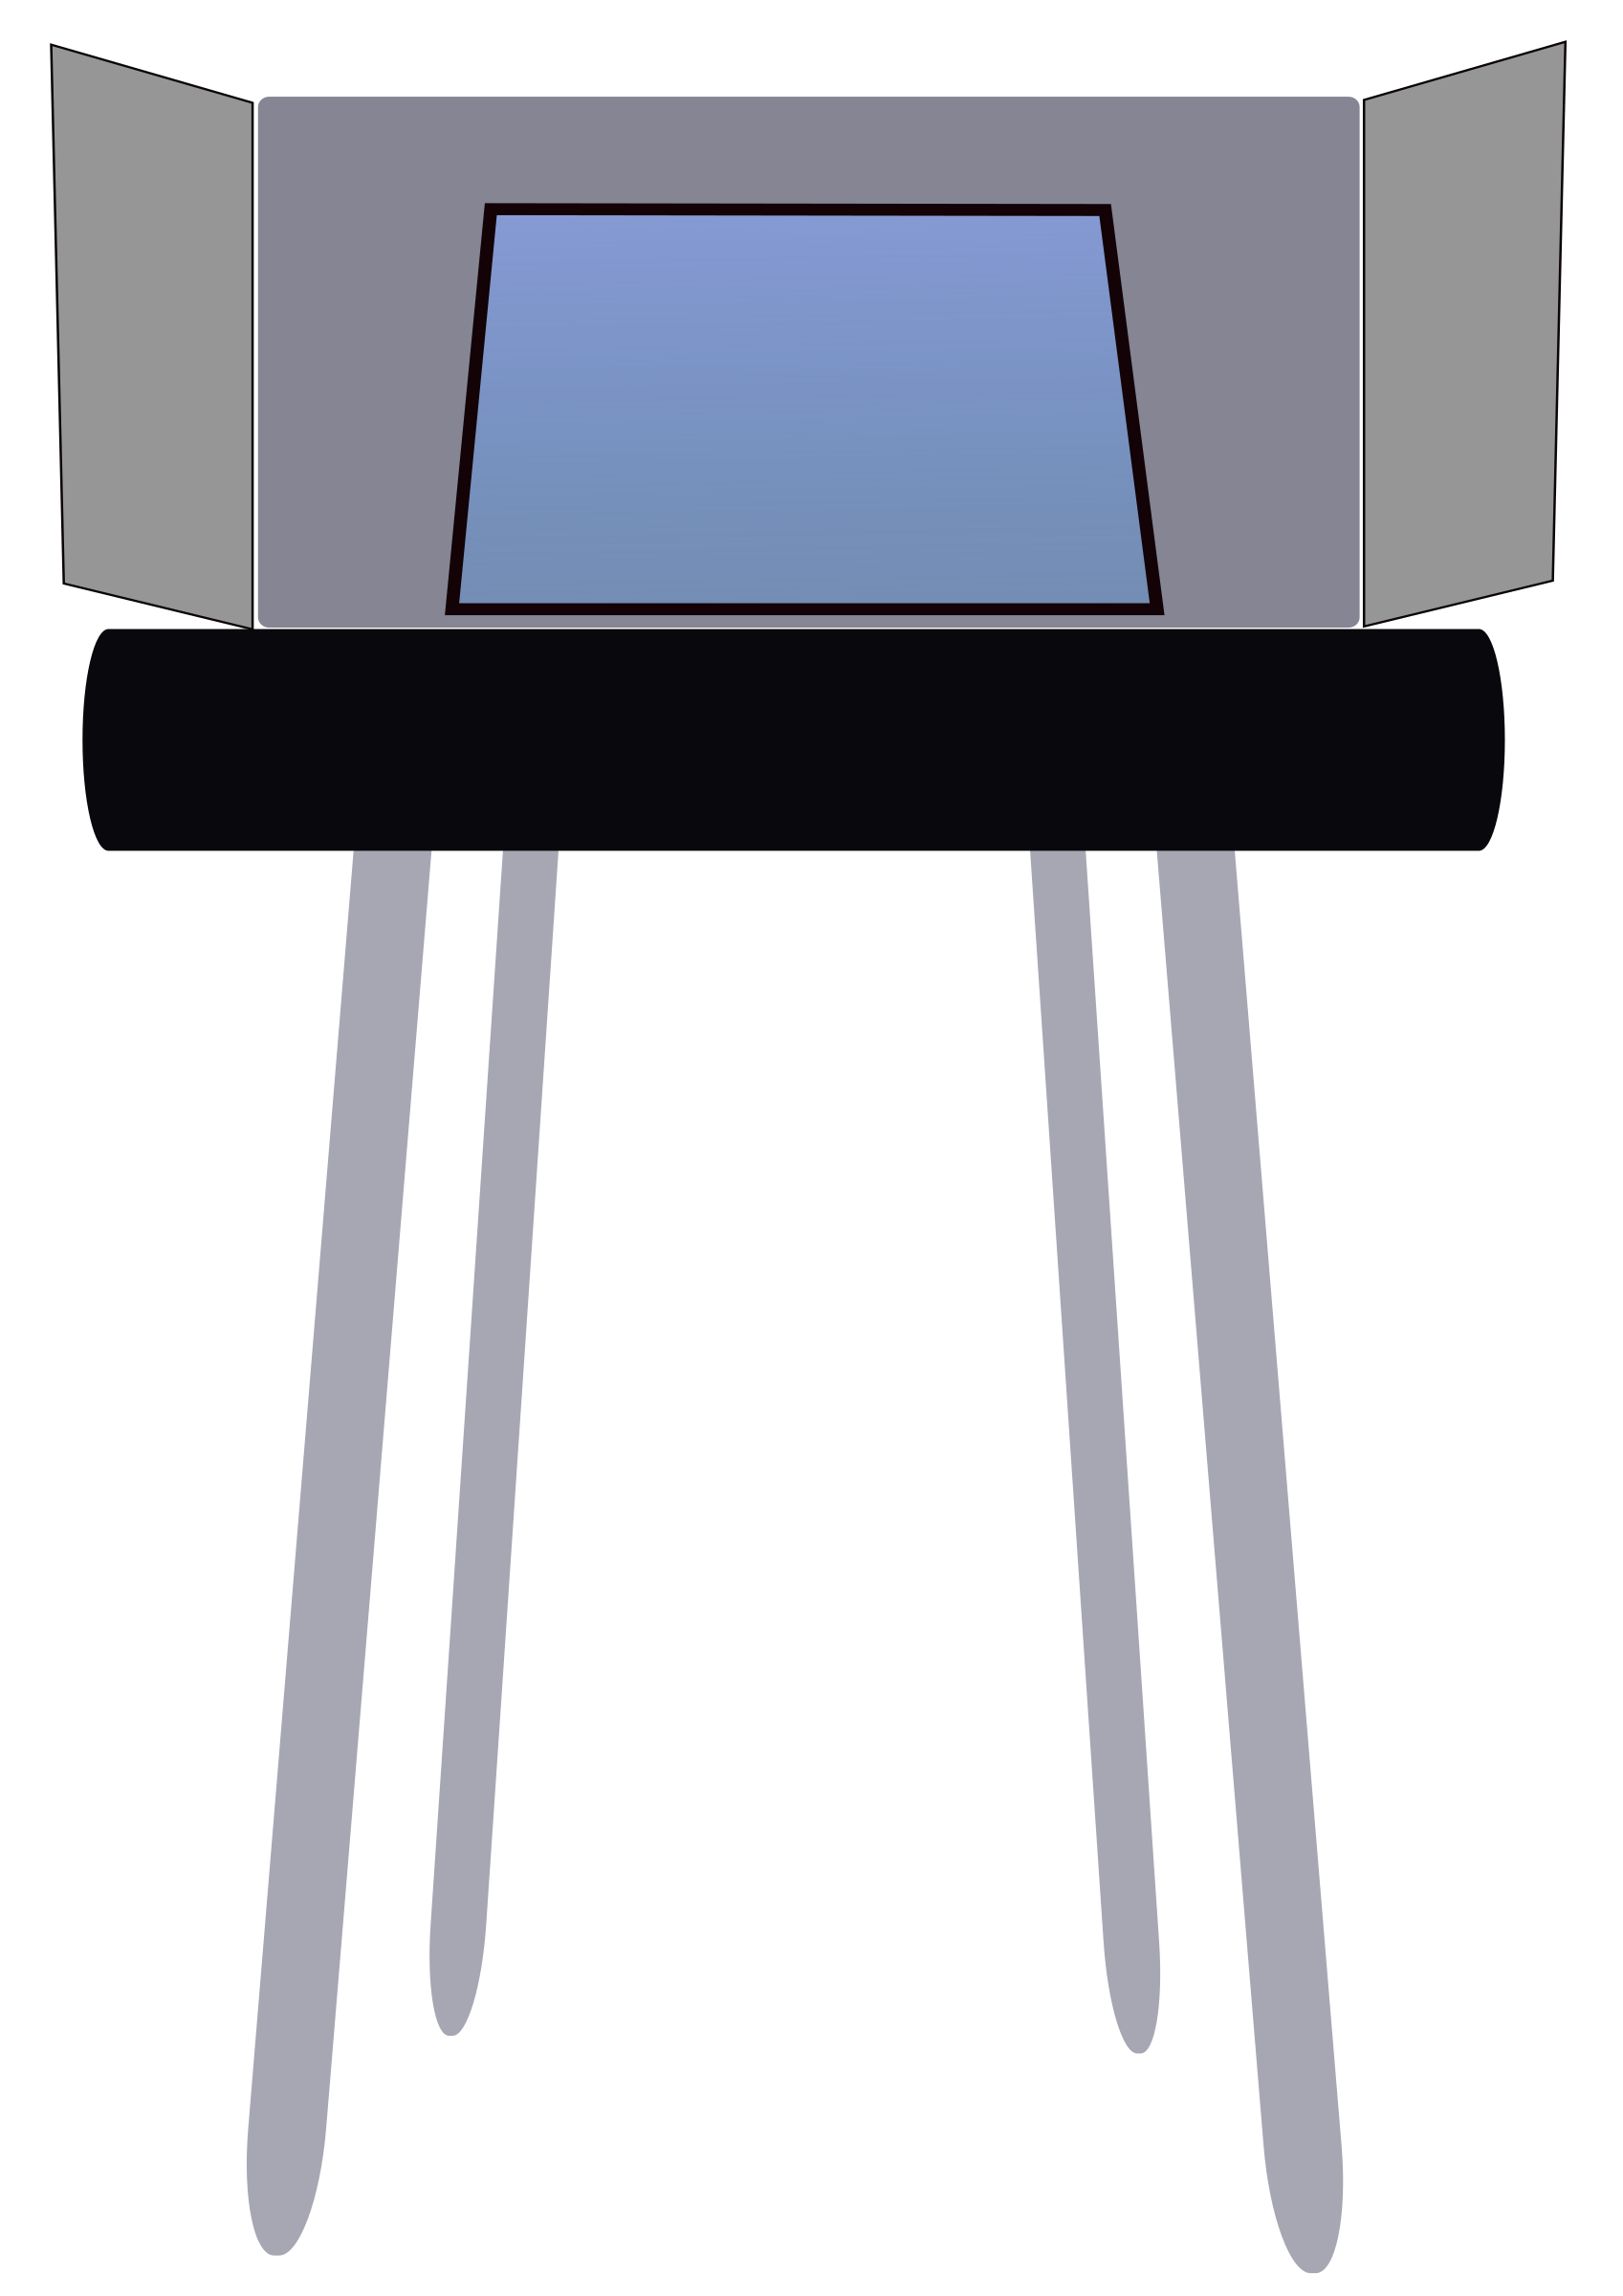 Big image png. Voting clipart voting machine